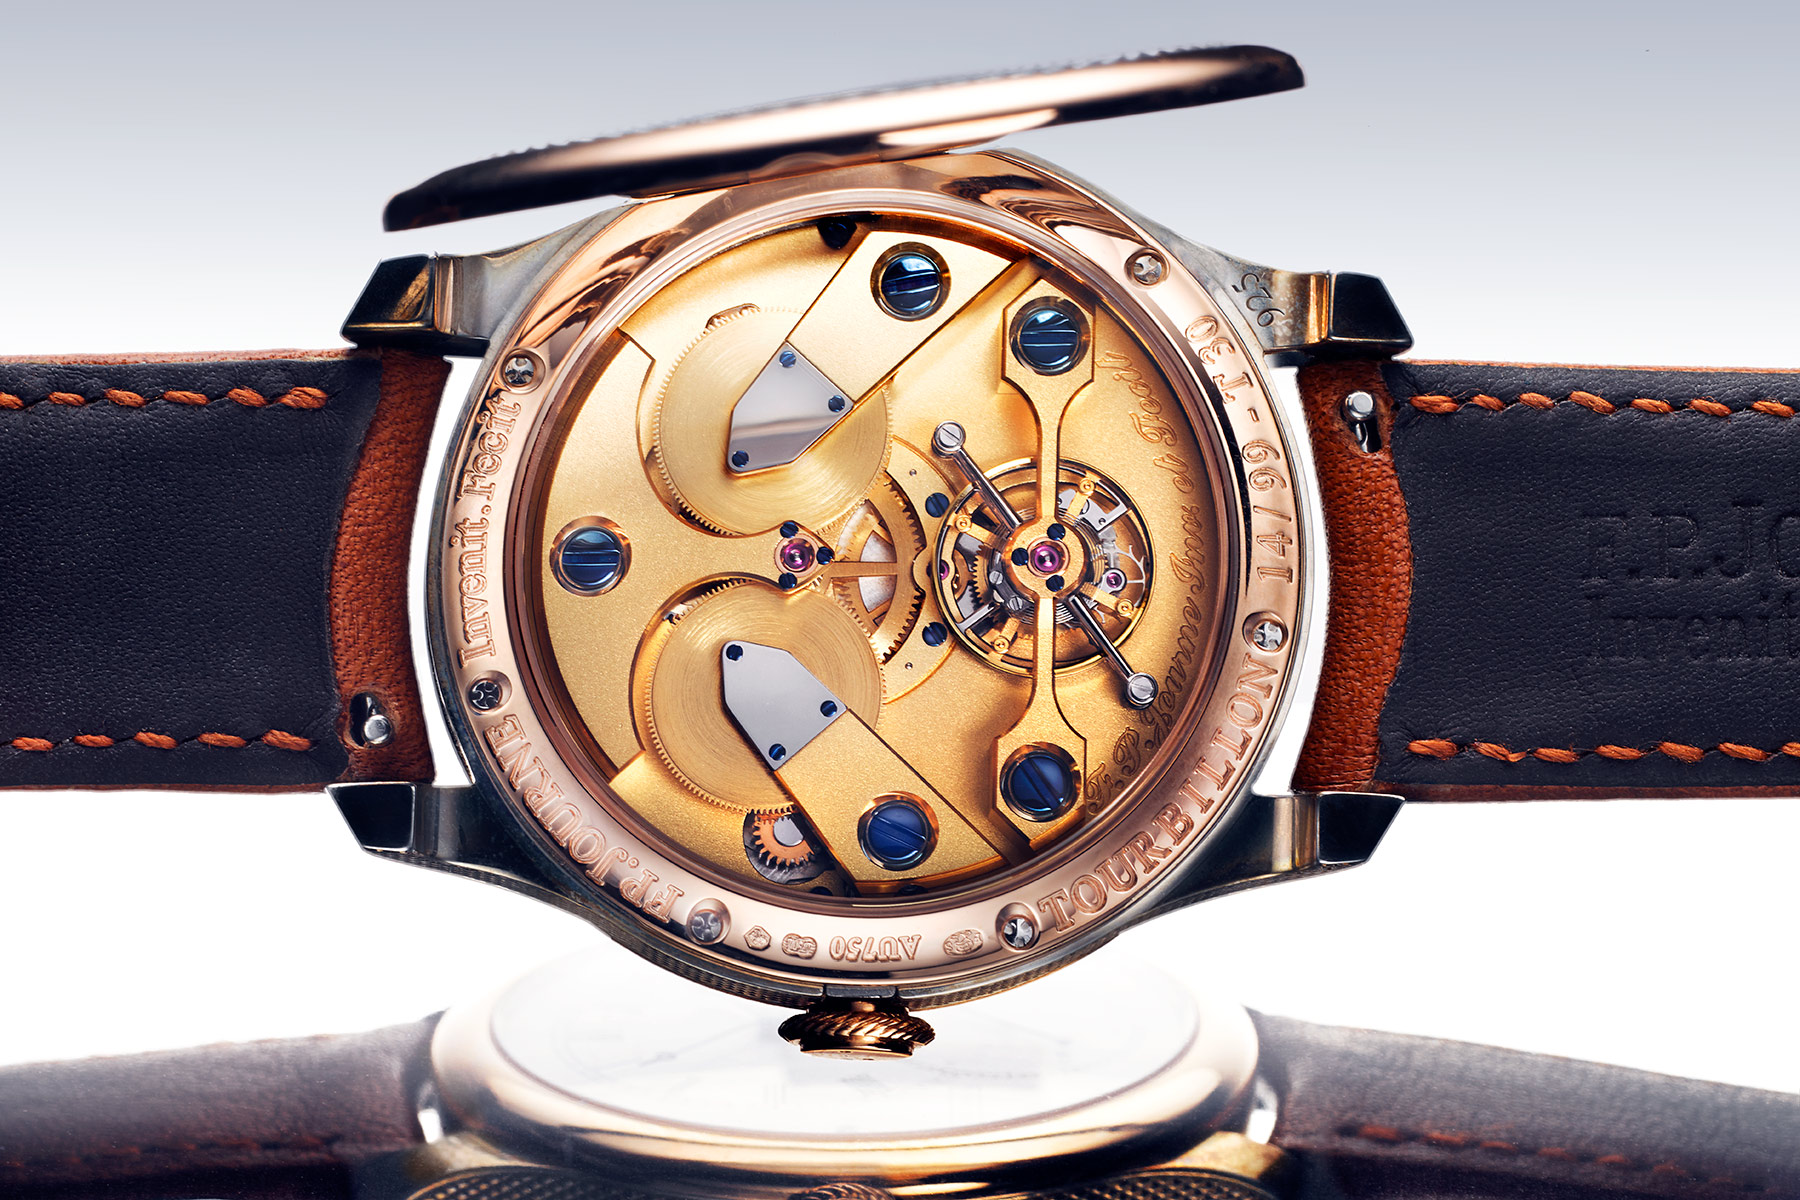 FP_Journe_back3.jpg